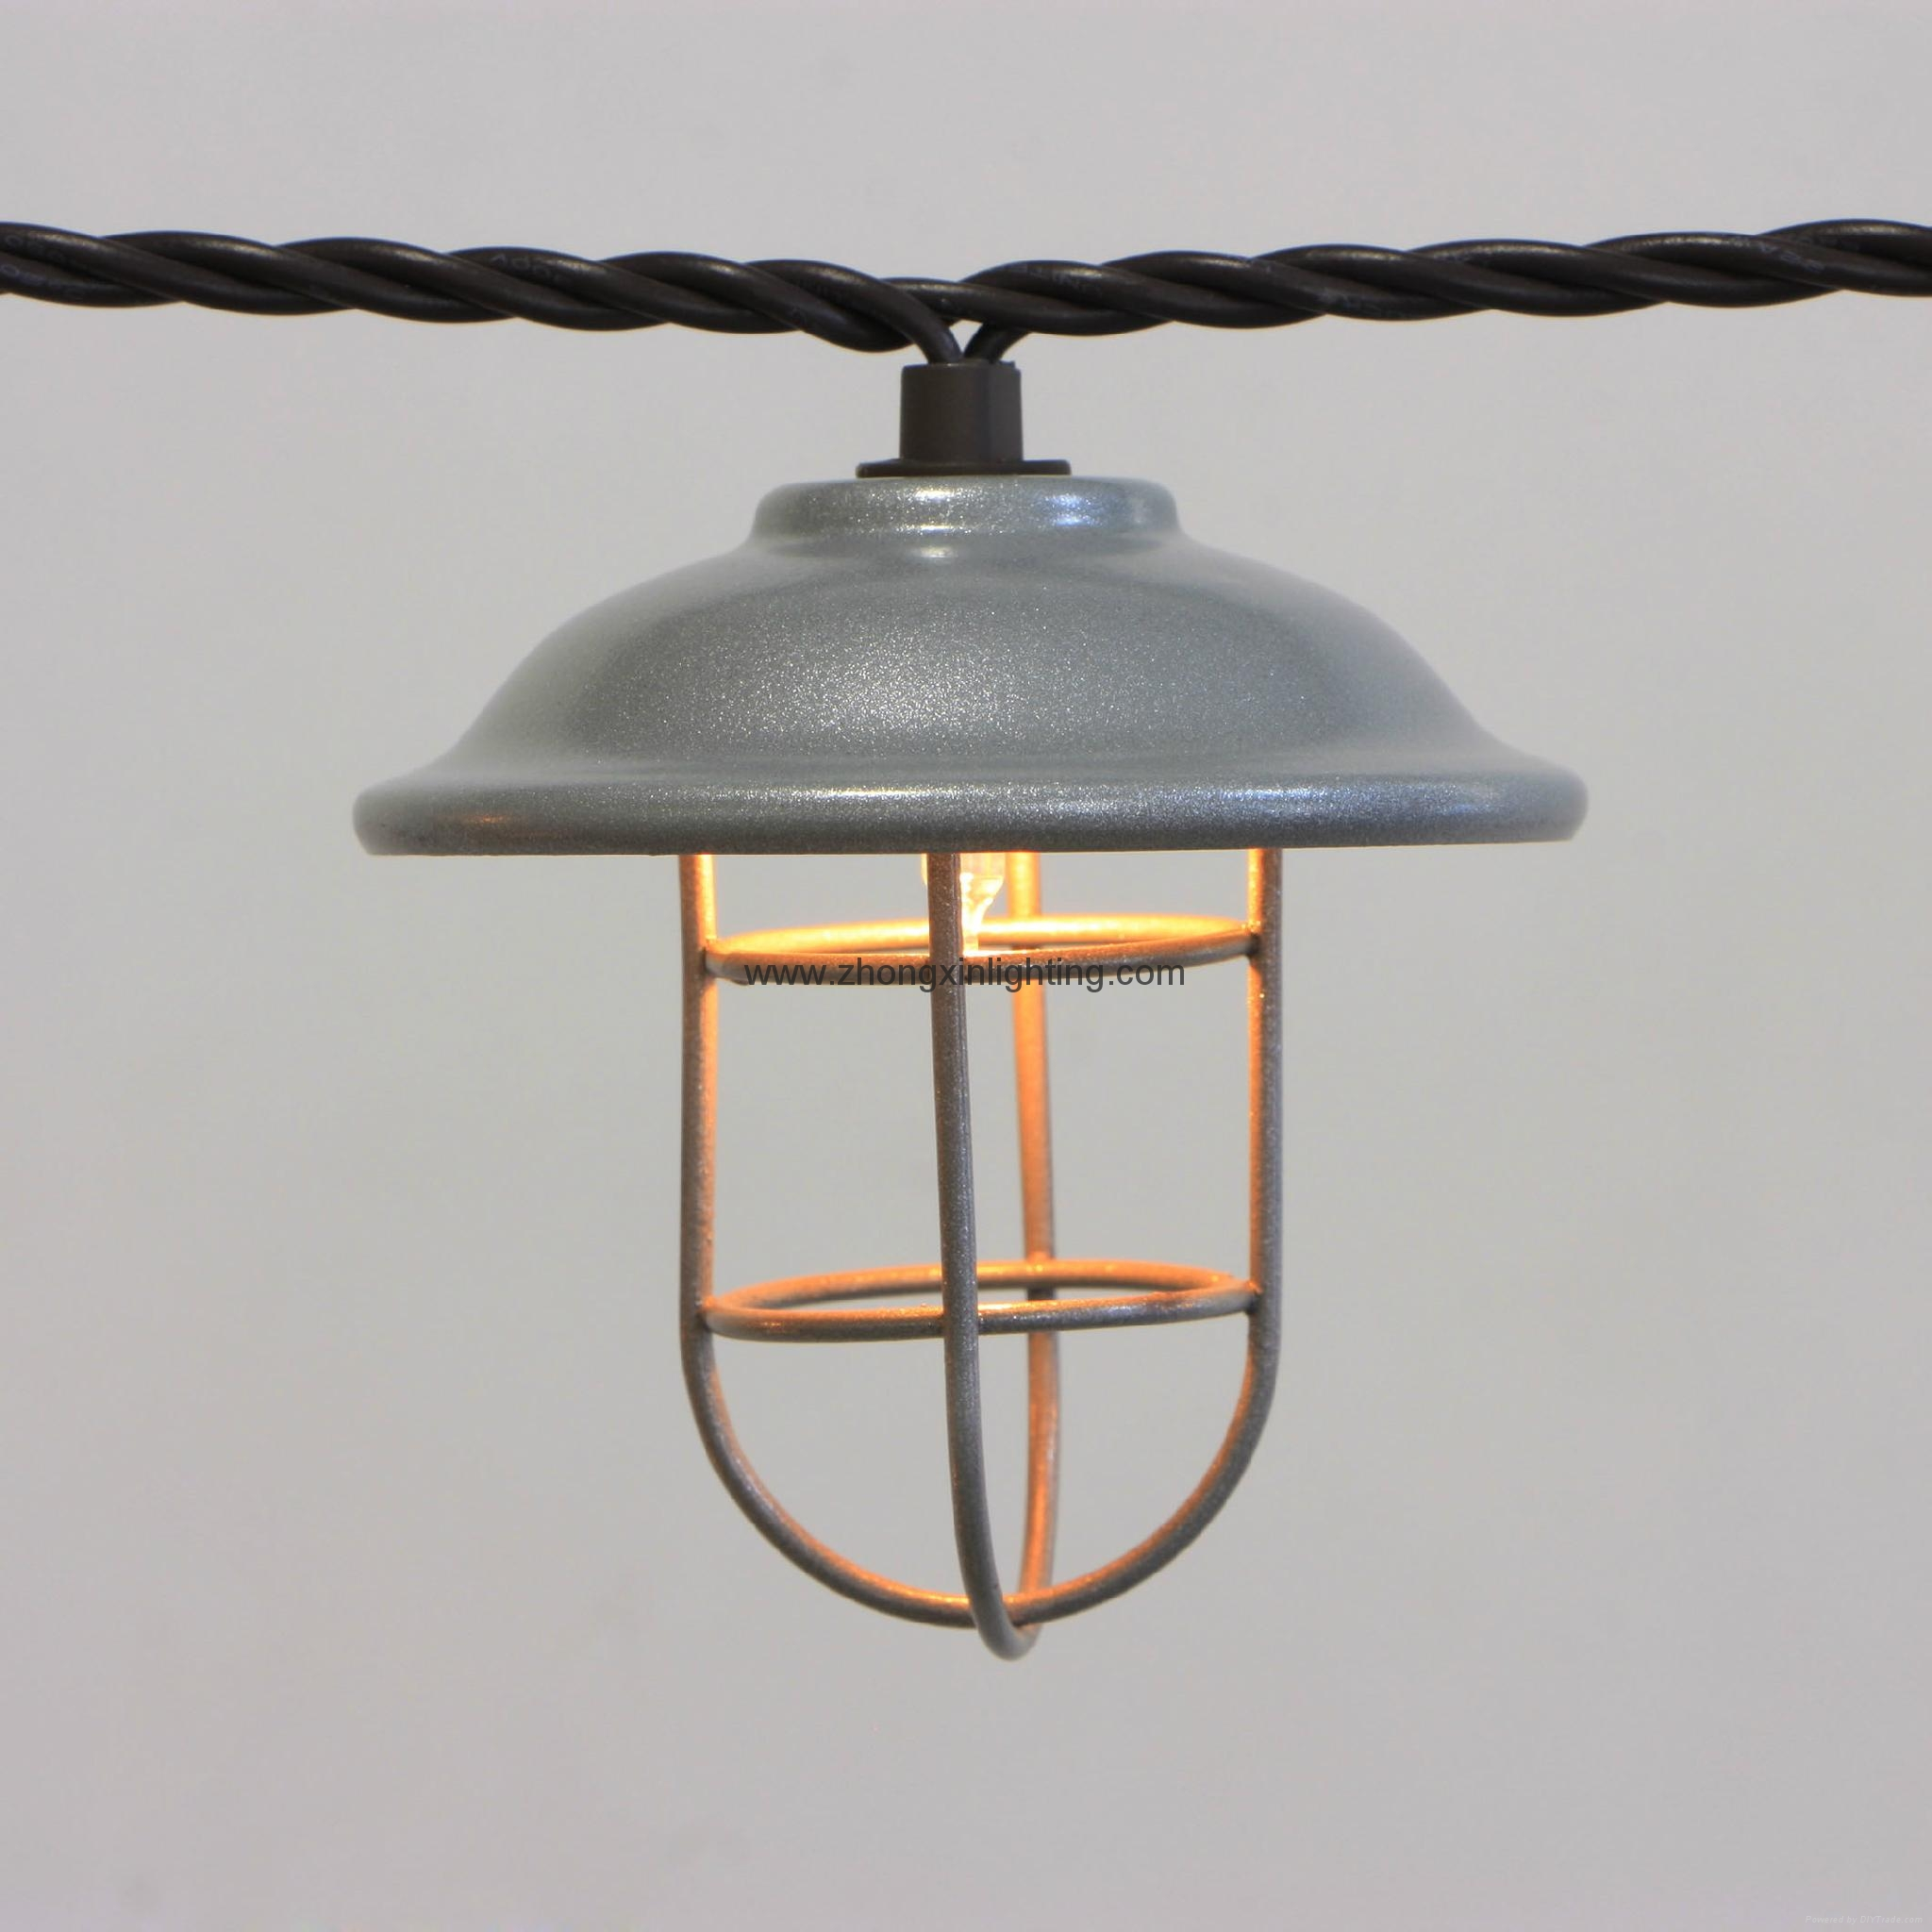 Garden String Light Decorative Galvanized Hood Amp Wire Cage